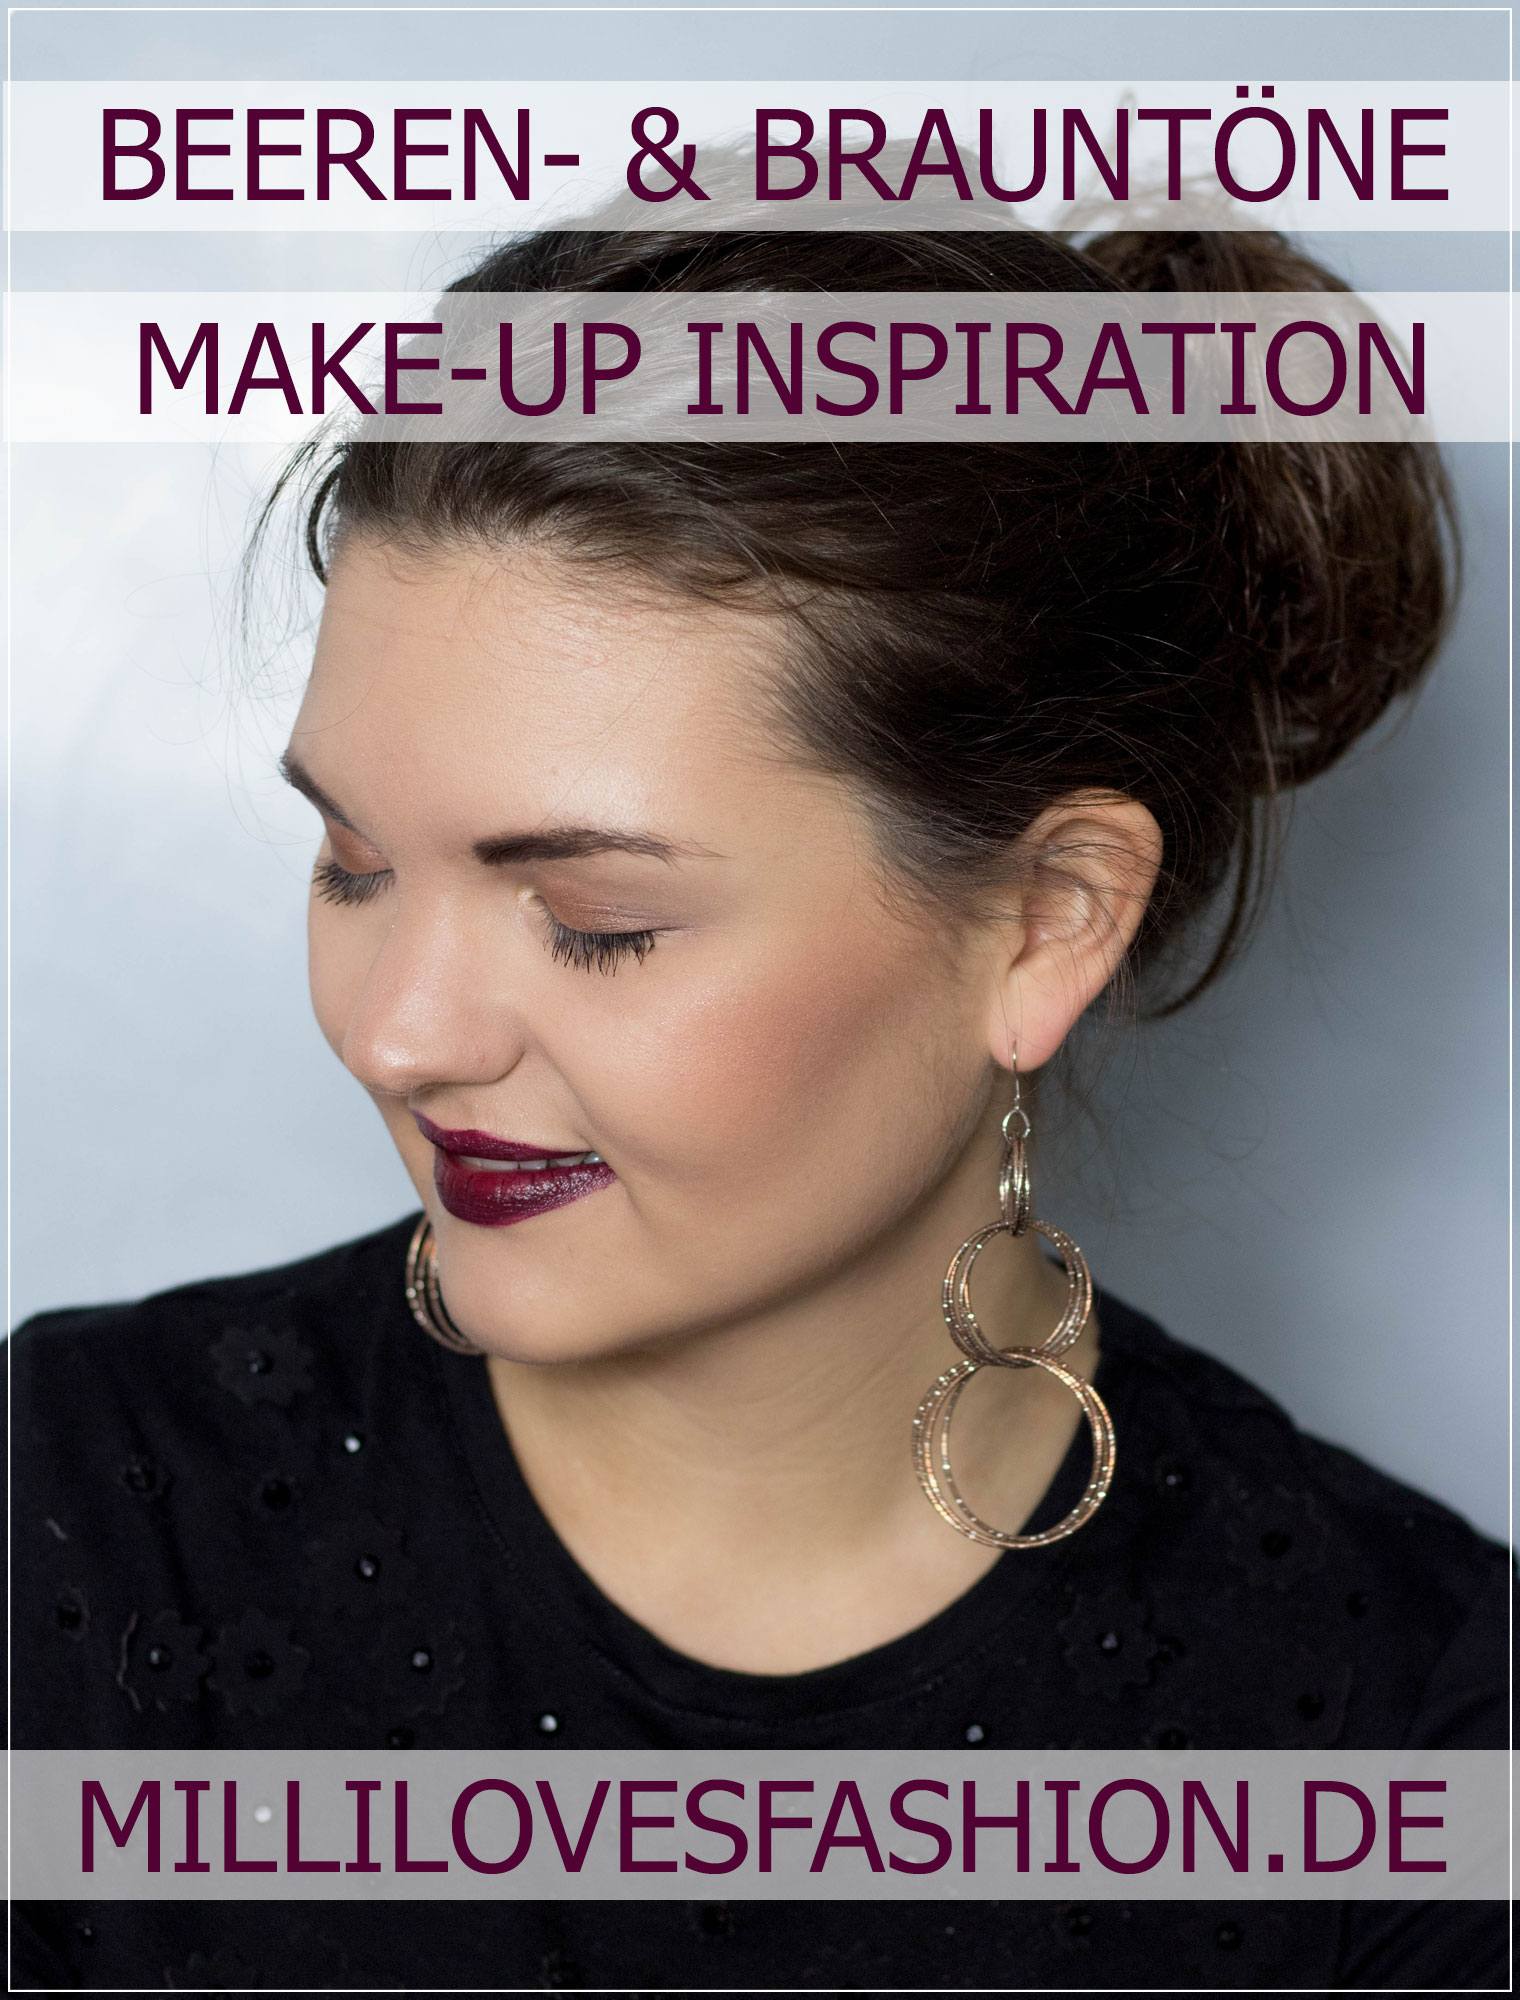 Herbst Make-Up, Make-Up Tutorial, Autumn Make-Up, Brauntöne, Lidschatten, shiny Make-Up